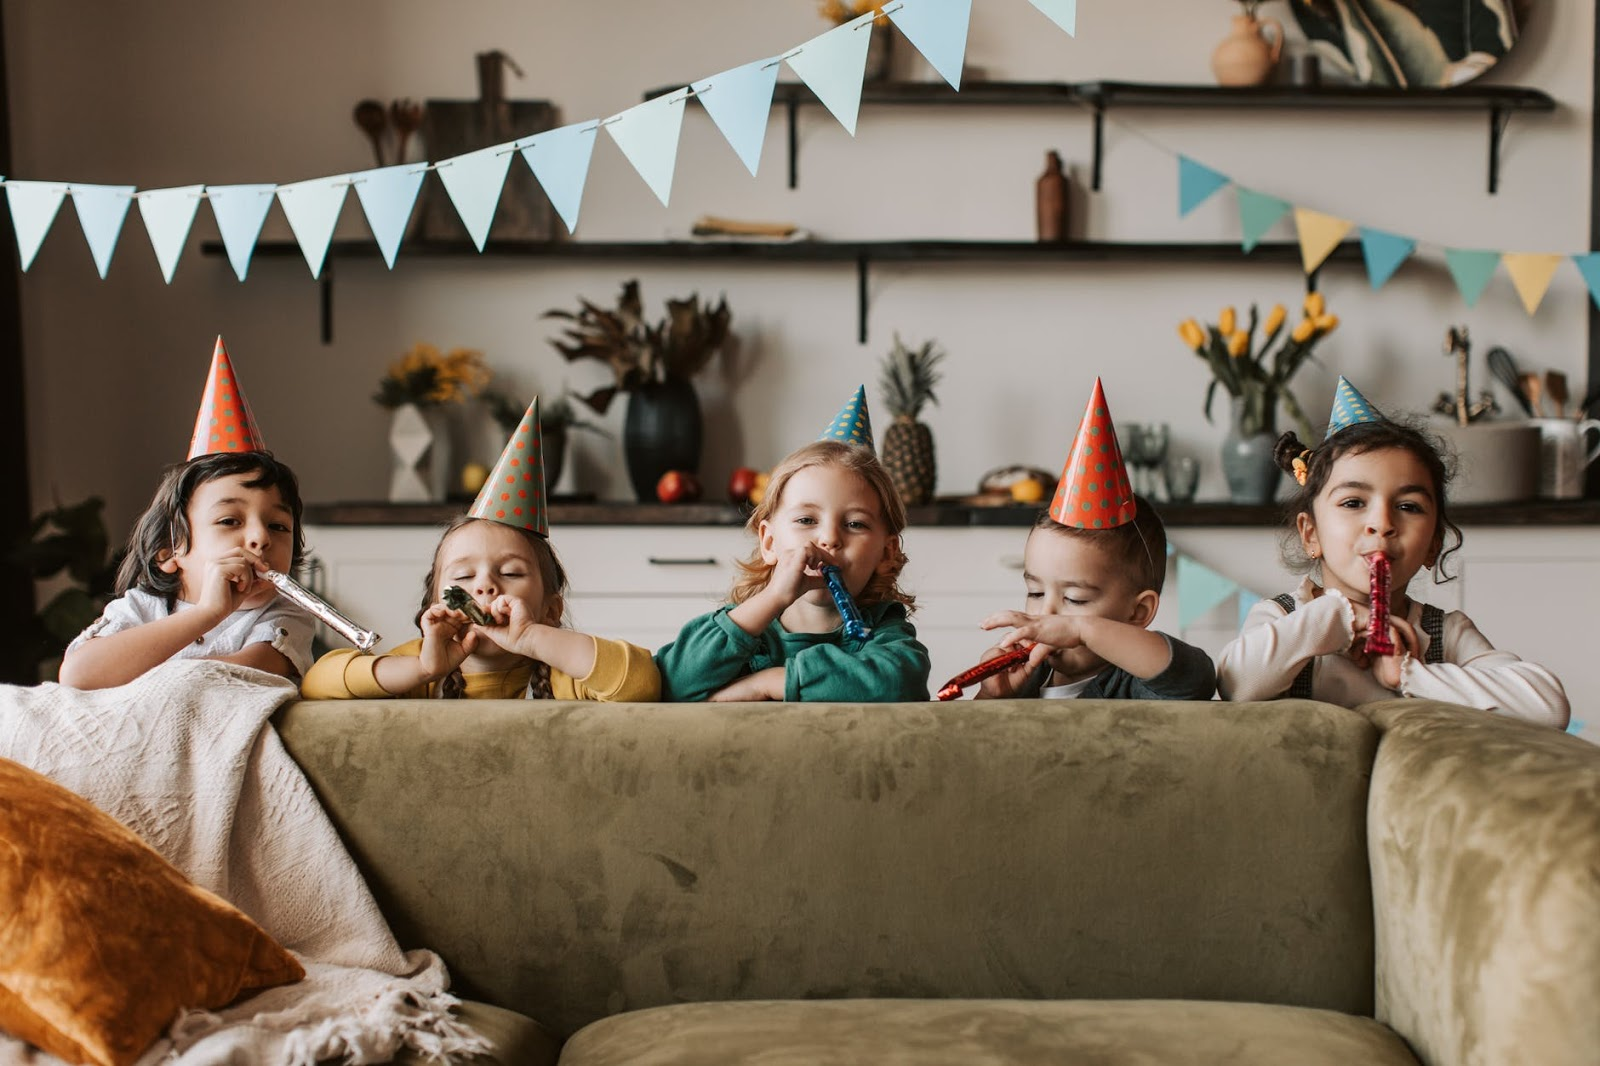 Five children stand behind couch with birthday decorations